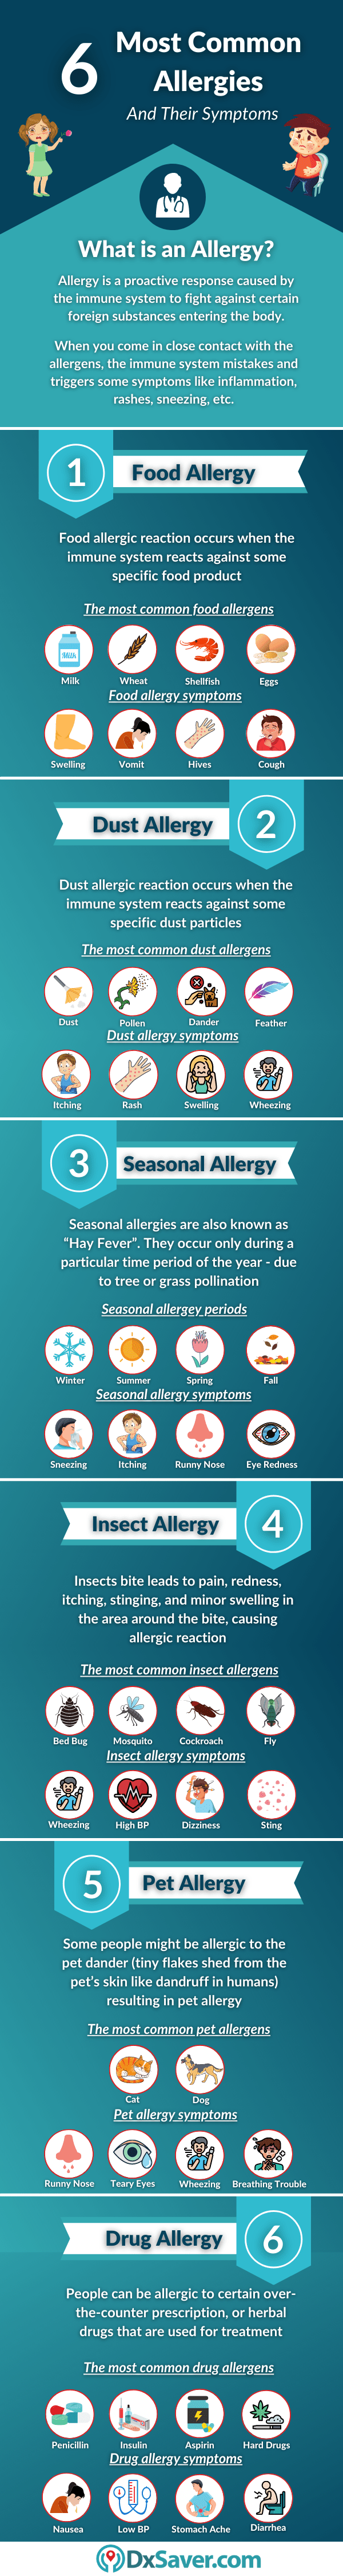 Allergy Symptoms, Causes, Treatment and Test Cost near me in the US